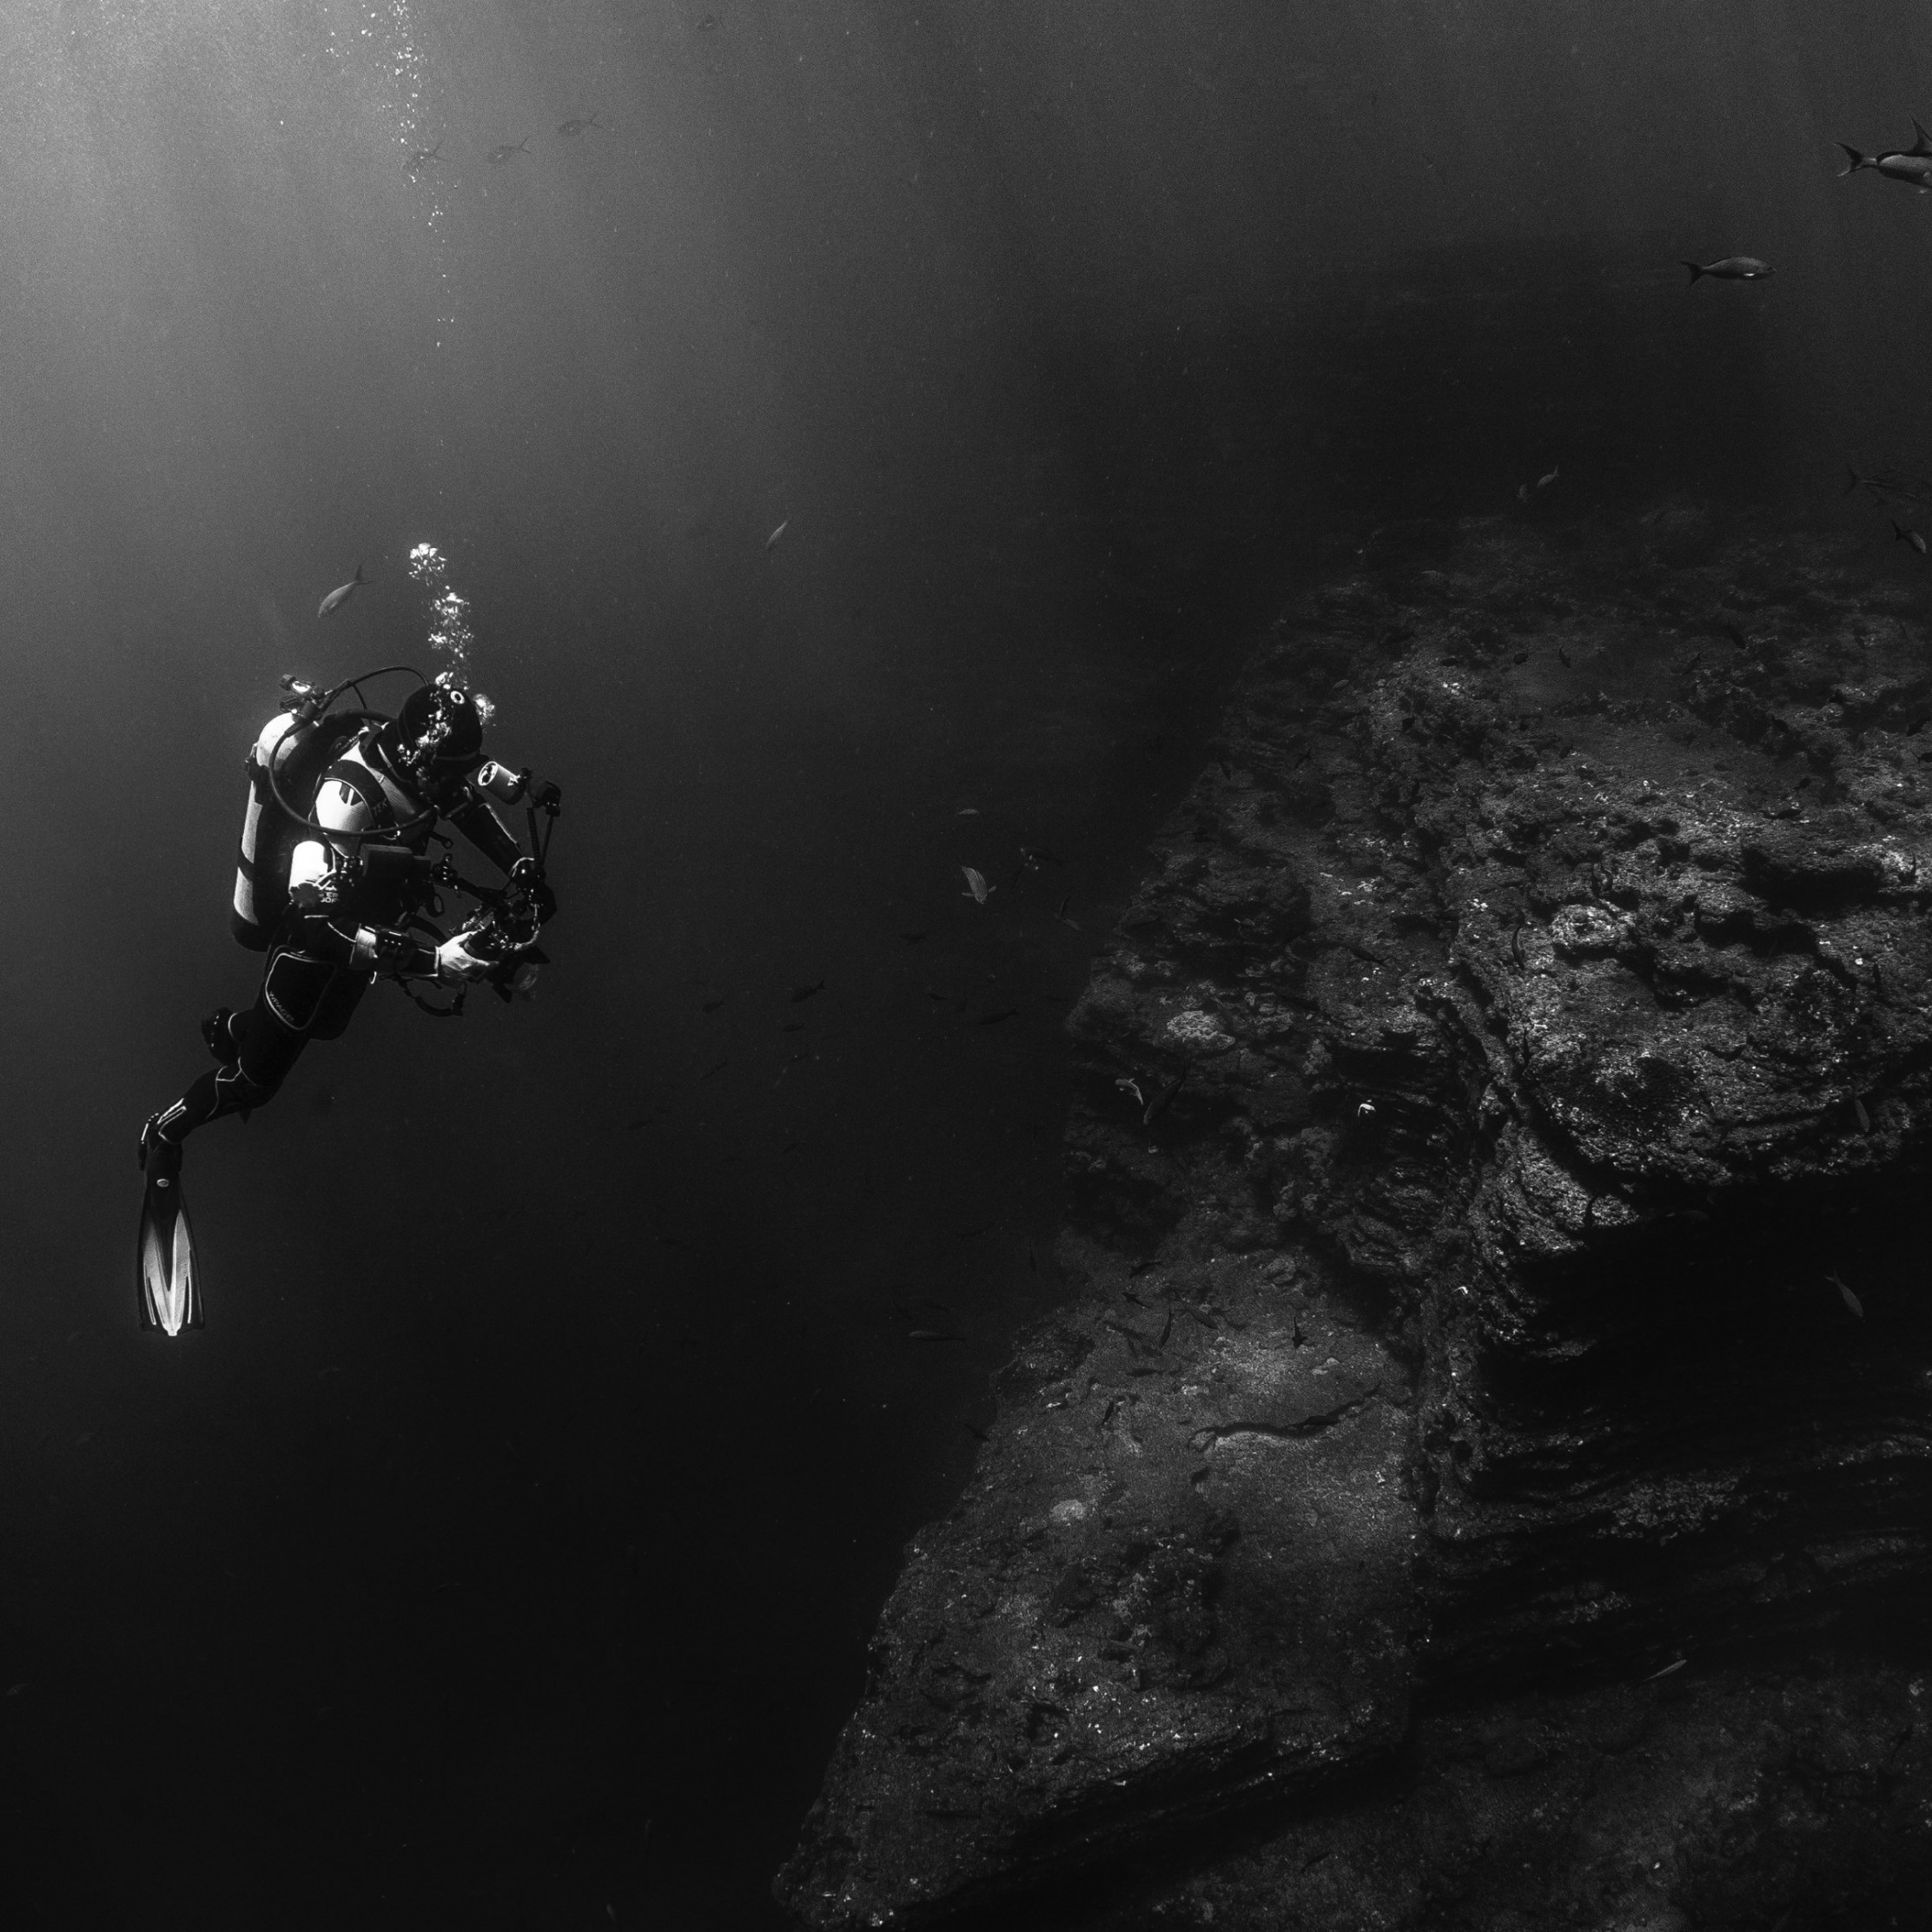 Diver in the Pacific Ocean wallpaper 2224x2224